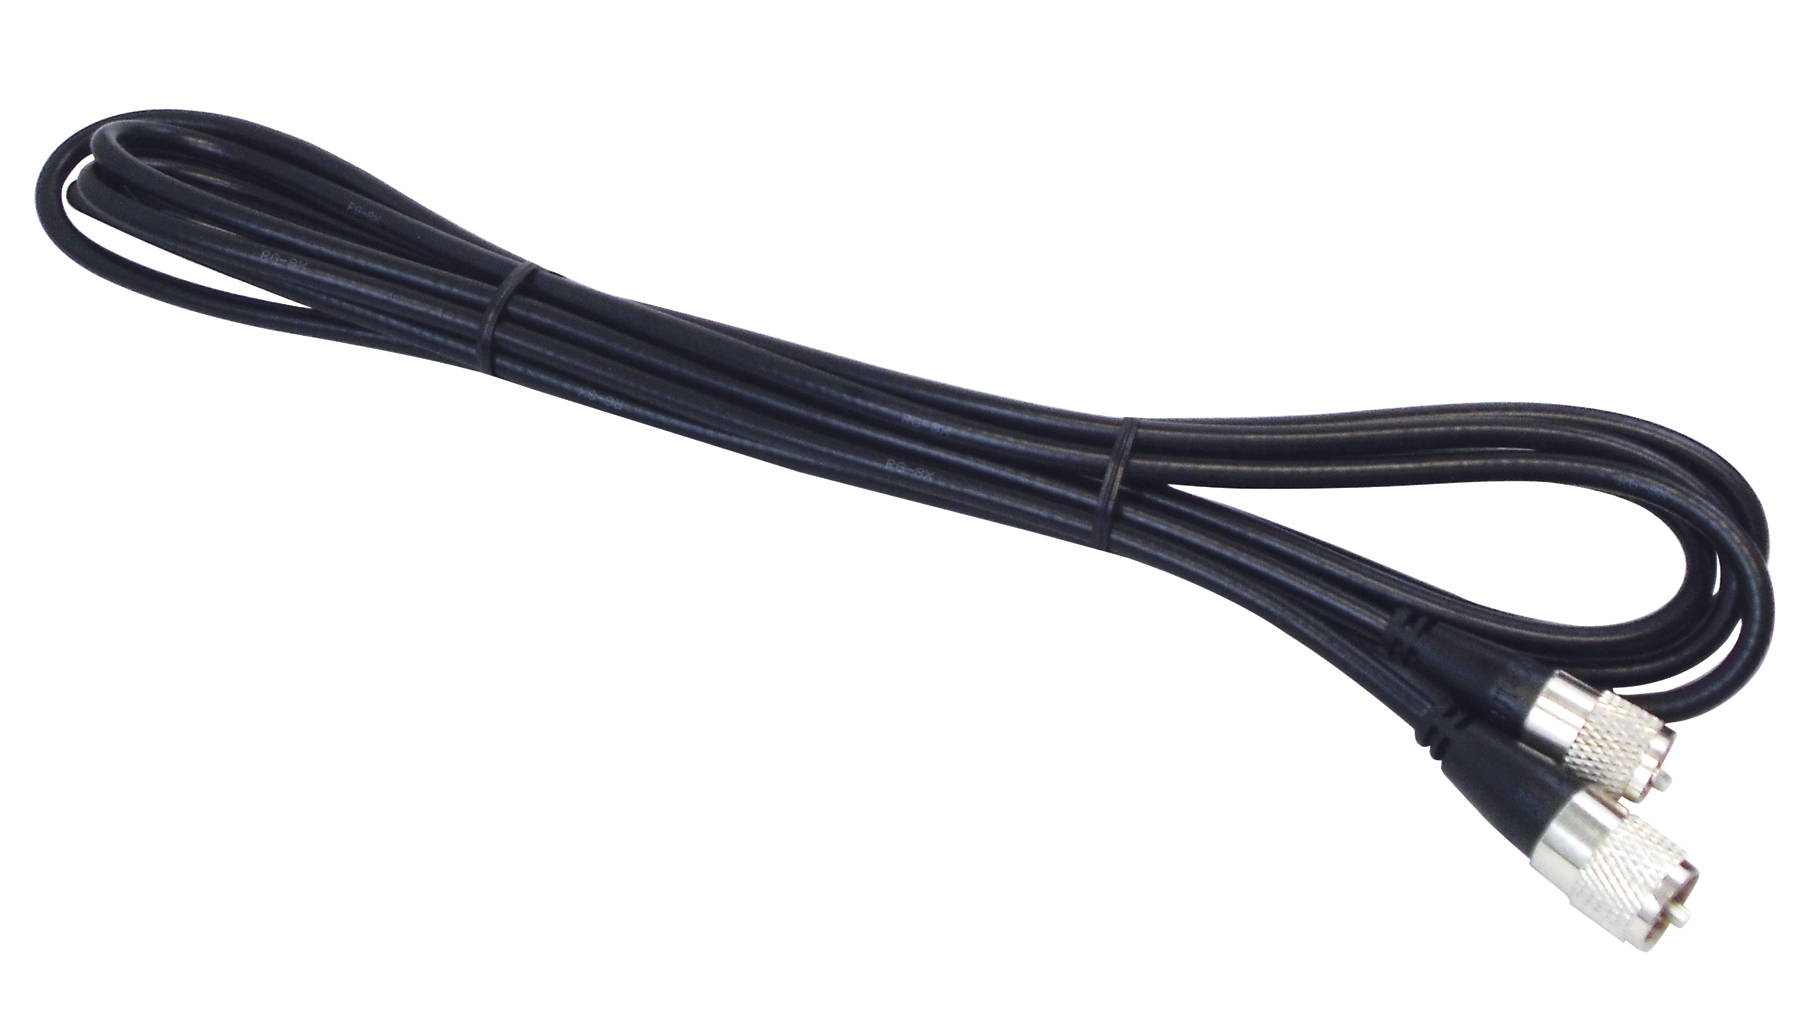 KALIBUR 12 FOOT BLACK RG8X COAX CABLE ASSEMBLY WITH MOLDED PL259 CONNECTORS ON EACH END